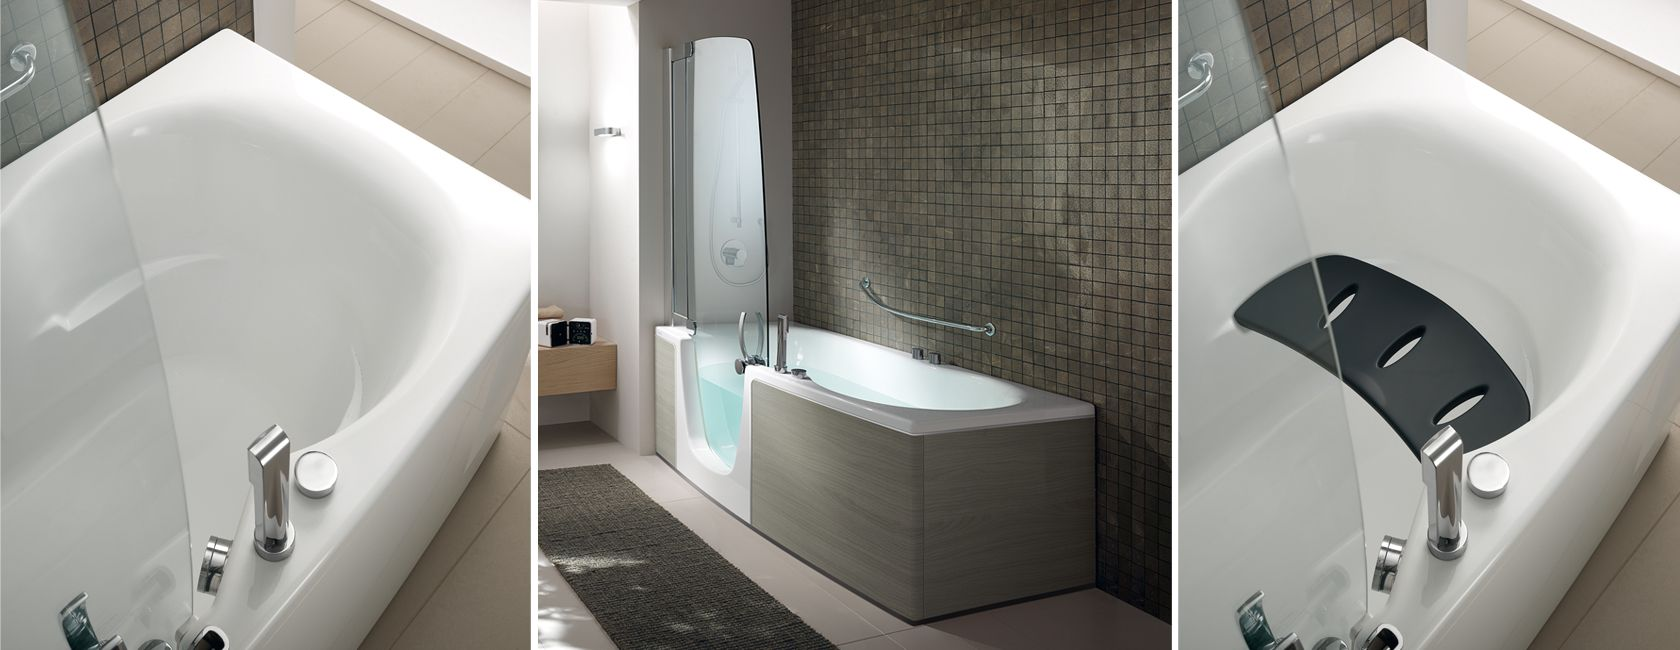 382 Combi Units Teuco With Images Walk In Tub Shower